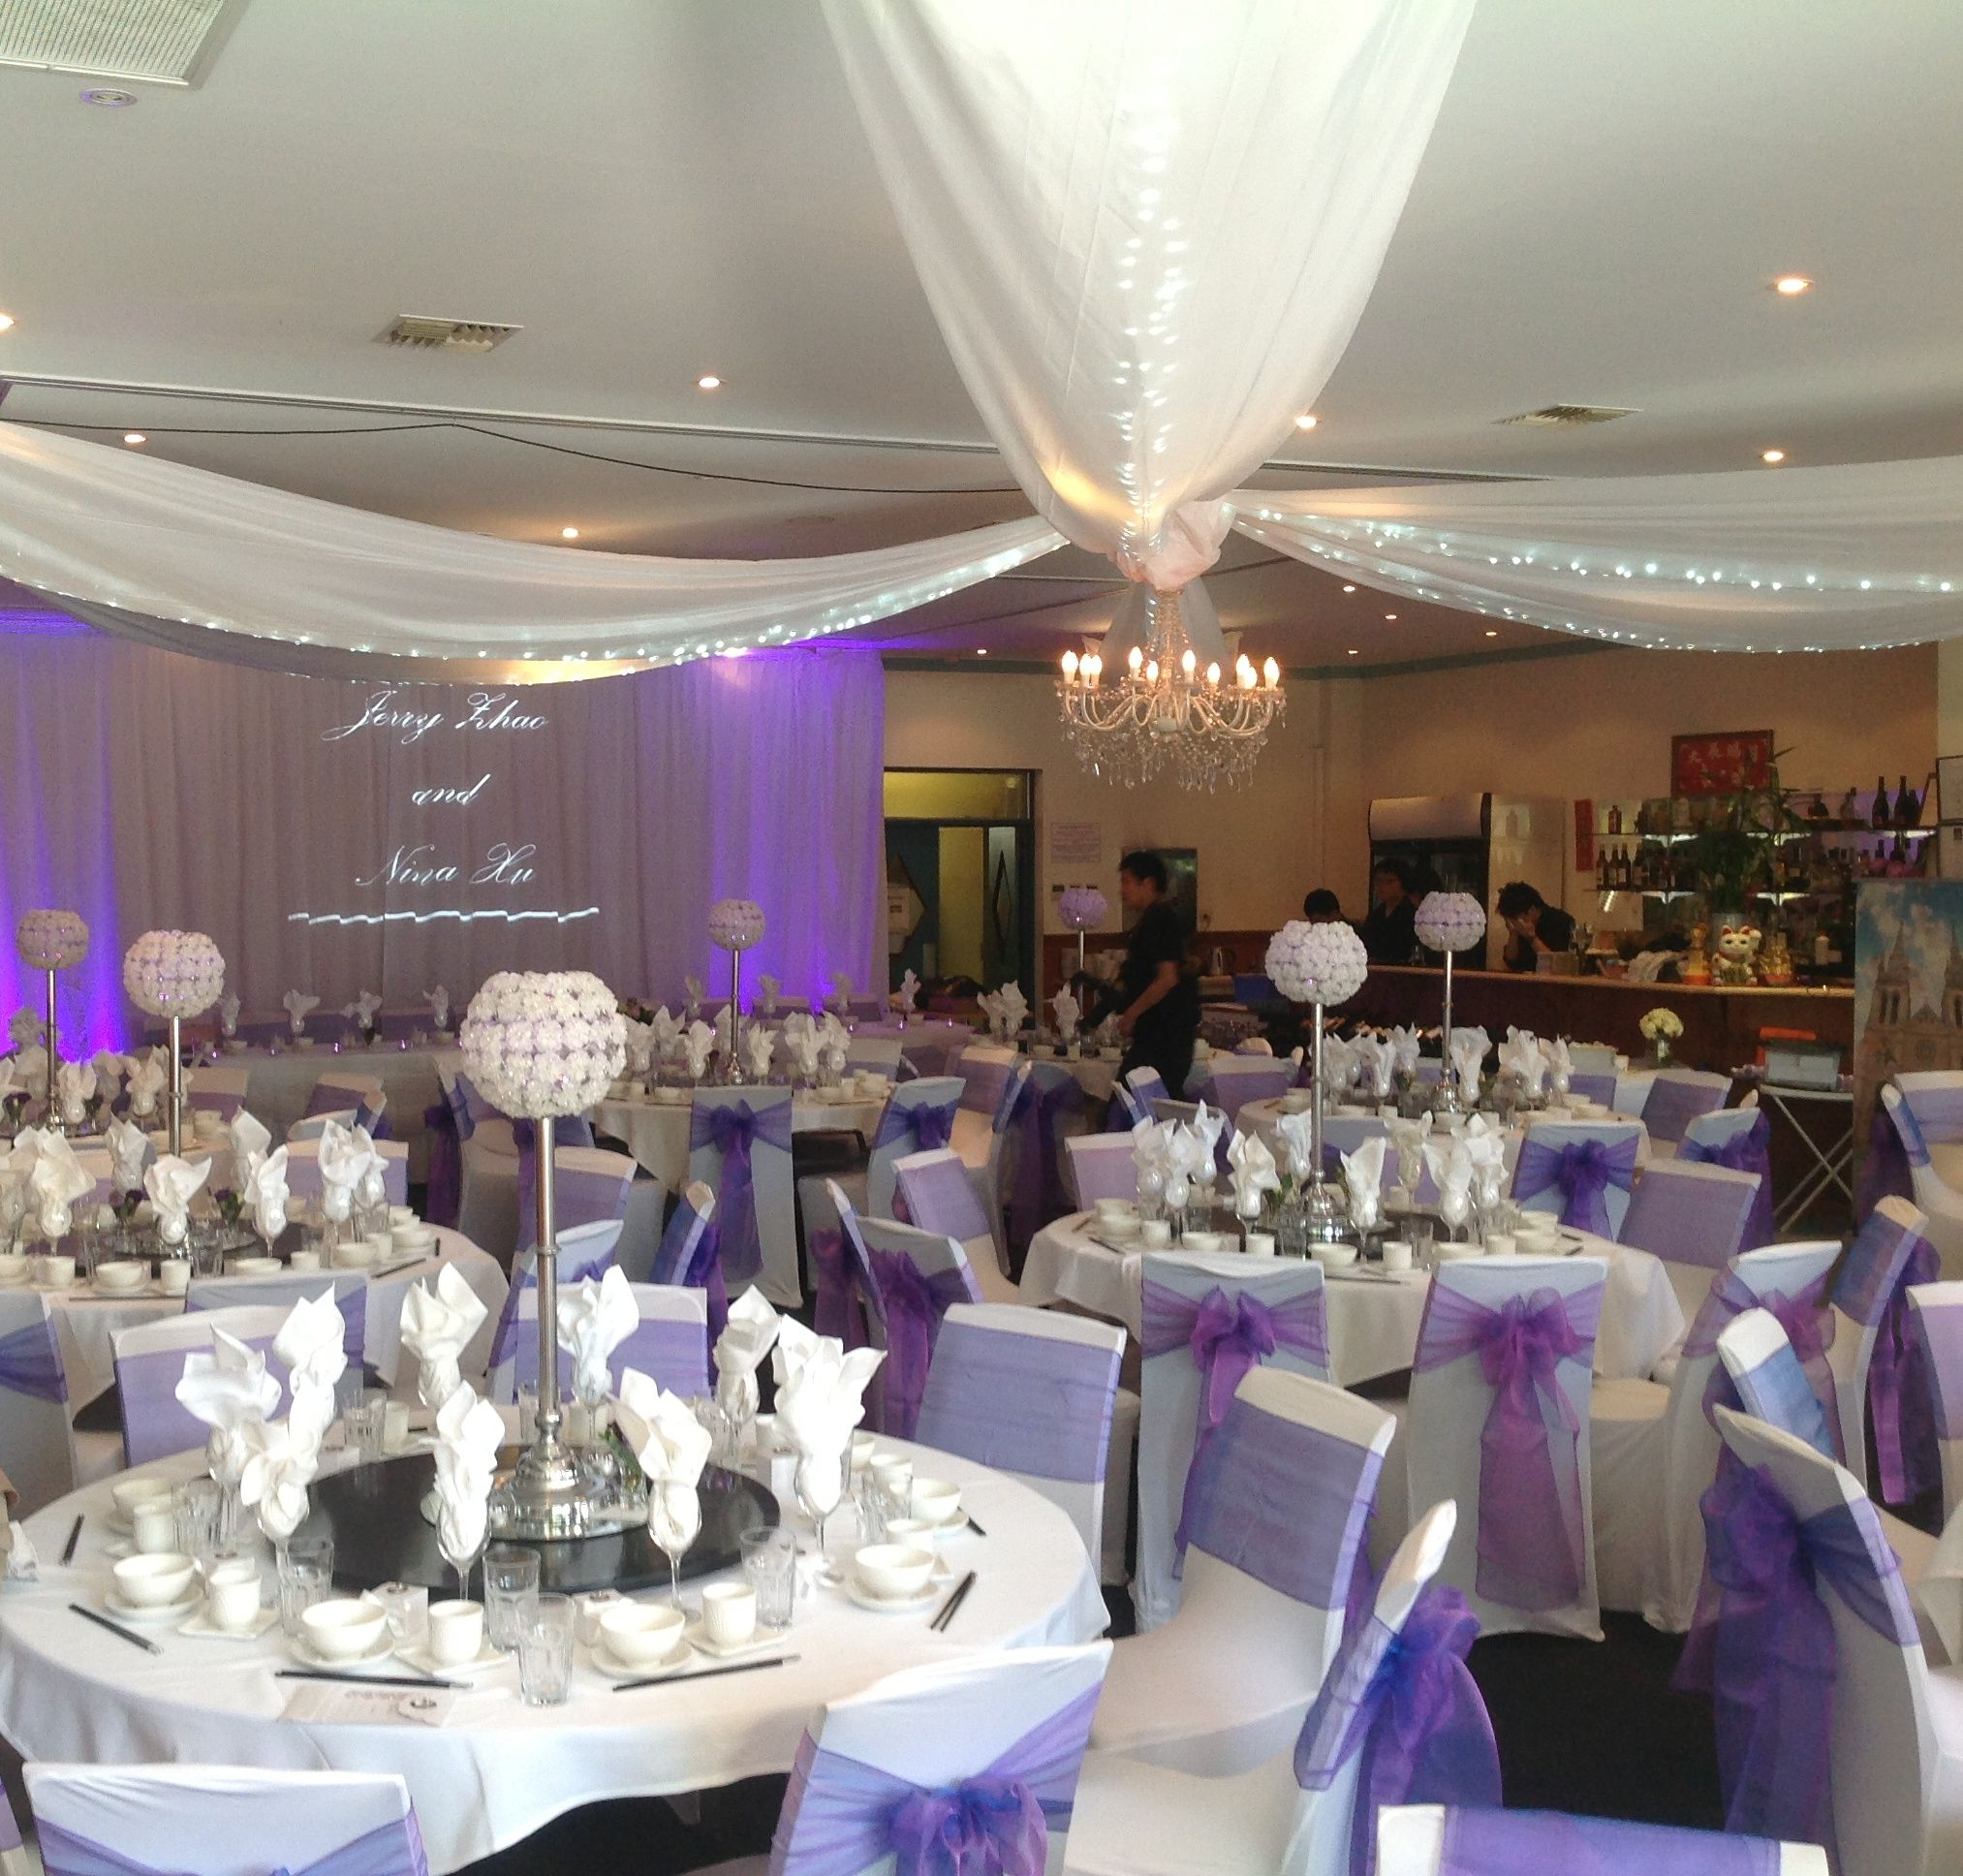 Adelaide wedding reception decor with ceiling swag and backdrop with adelaide wedding reception decor with ceiling swag and backdrop with bride and grooms names junglespirit Image collections